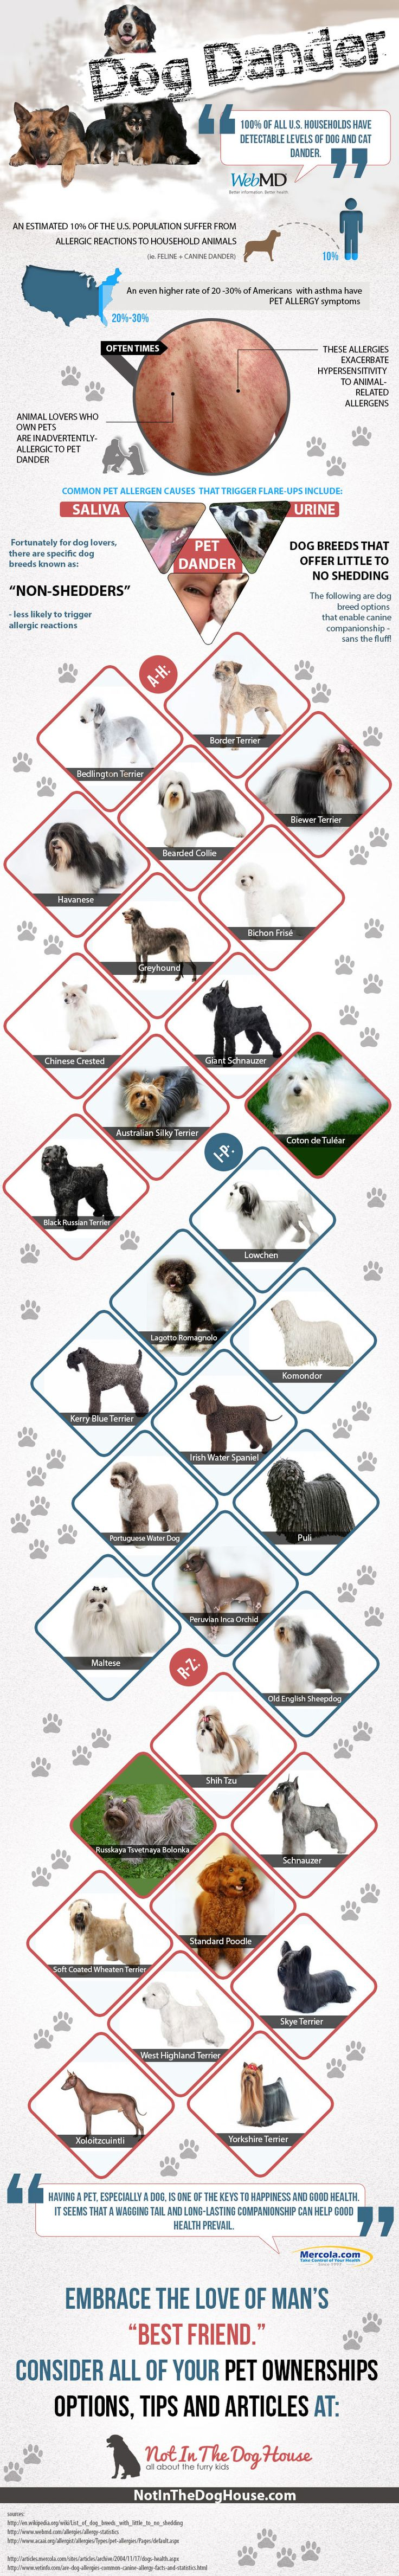 Doggone Dog Dander – Not With These Non-Shedders [Infographic] http://www.notinthedoghouse.com/doggone-dog-dander-non-shedders/